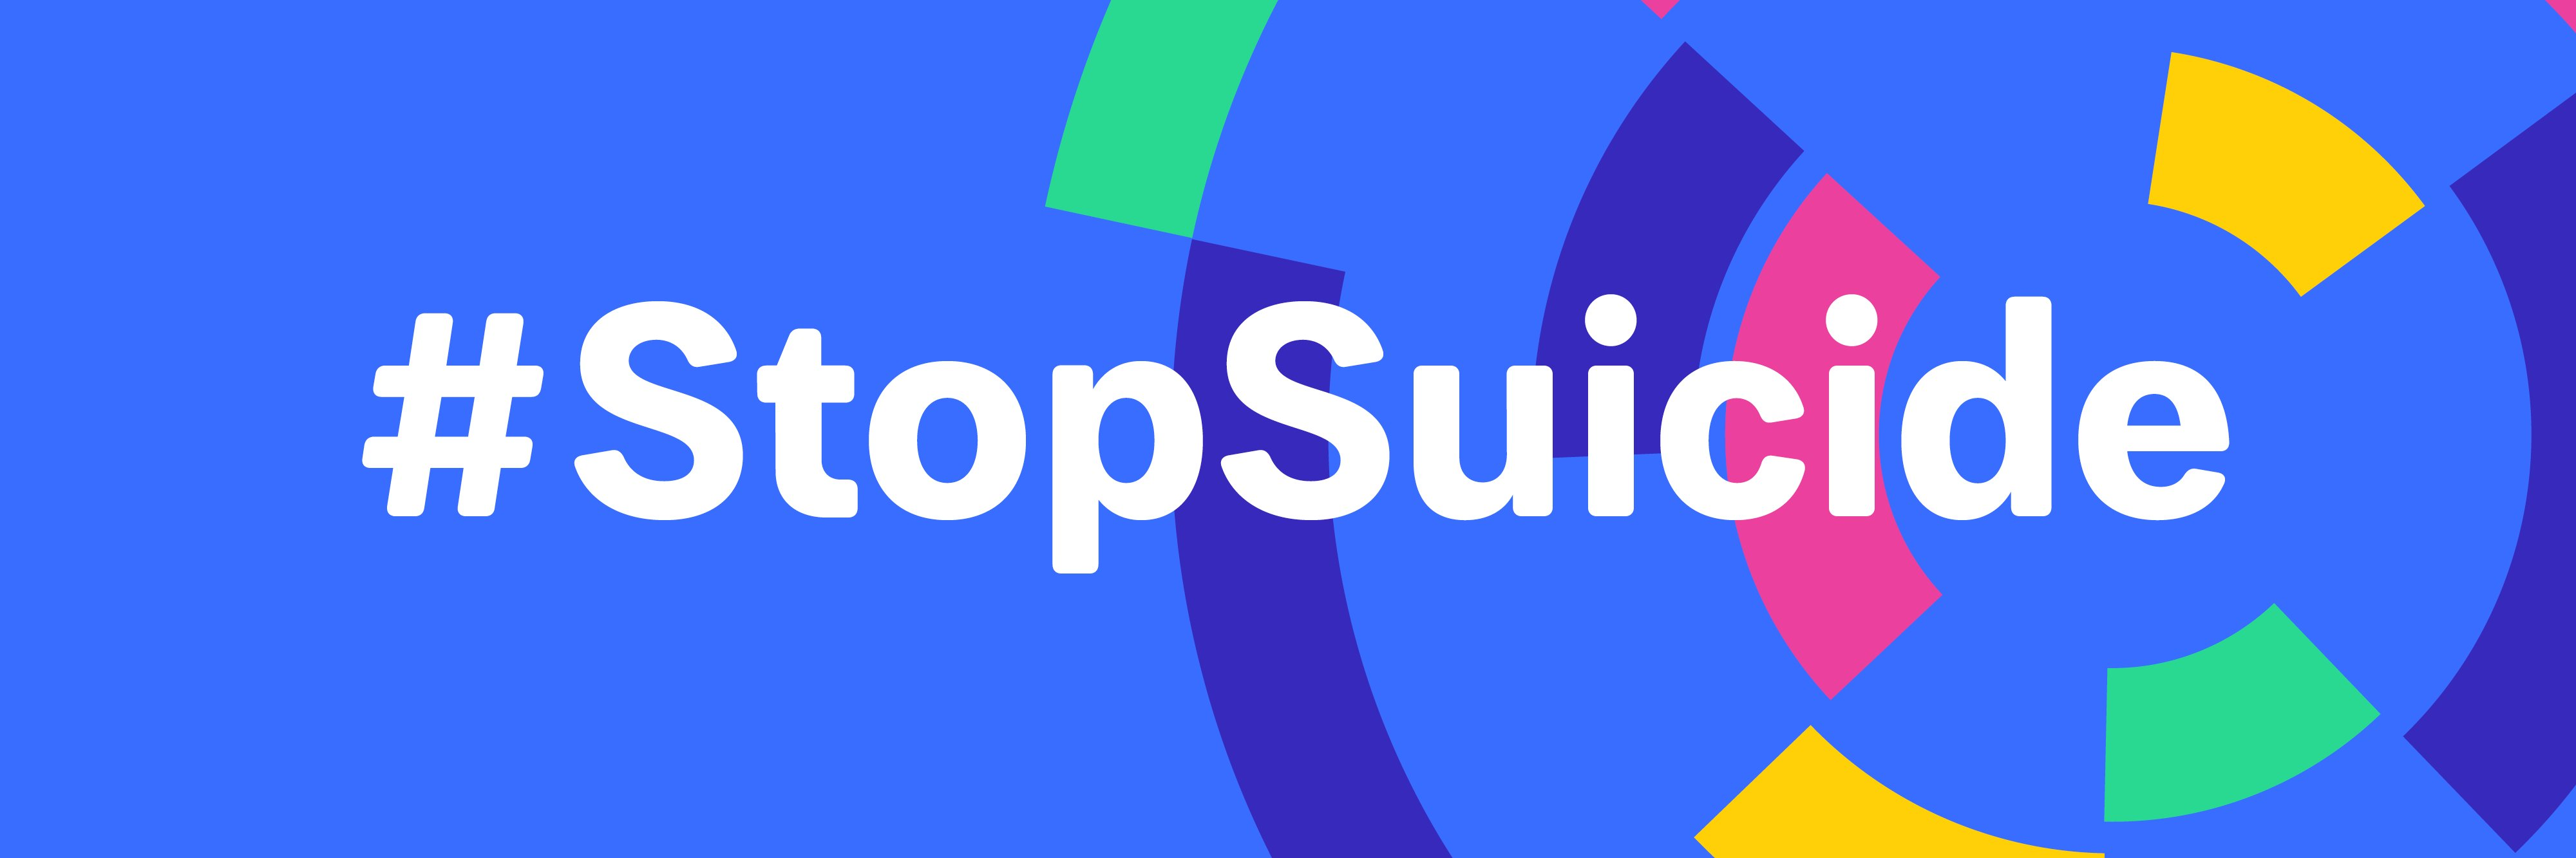 It's okay to ask for help. These resources are always here for you and your friends: 💙 @800273TALK 💙… https://t.co/qt3RL49OGc